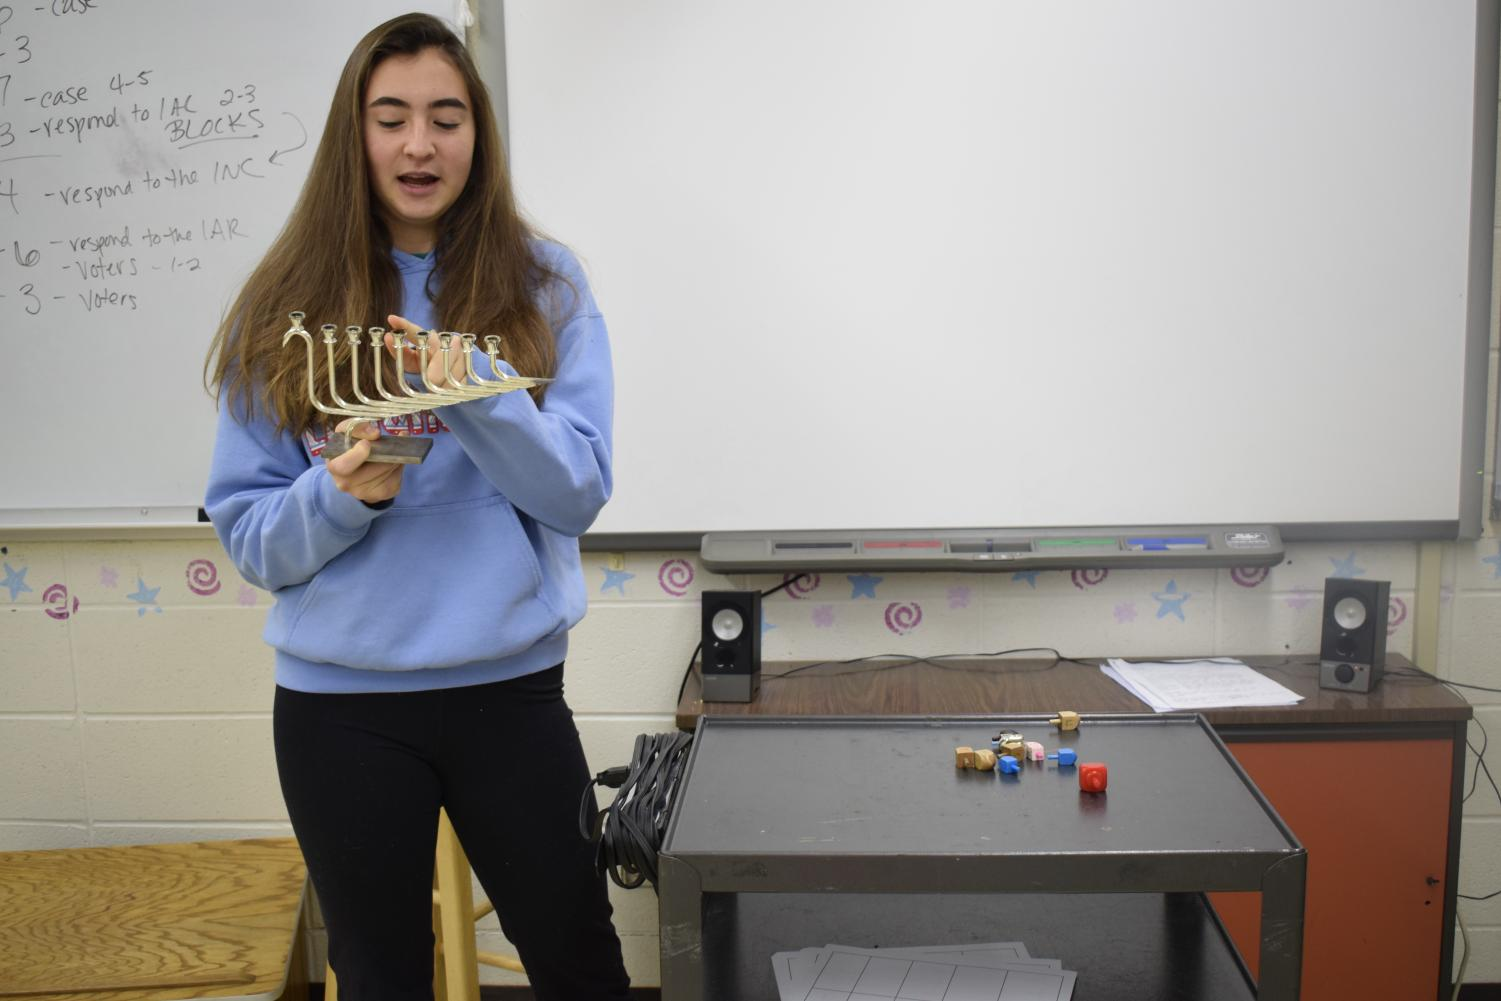 """Pointing to the fourth branch on the Chanukiah, junior Ella Seigel describes Chanukah and other Jewish holidays to her peers. Seigel presented with props to share part of the Jewish culture with students at Westminster. """"Their engagement showed that if you open up and show your differences, that can also provide unity in understanding,"""" Seigel said."""